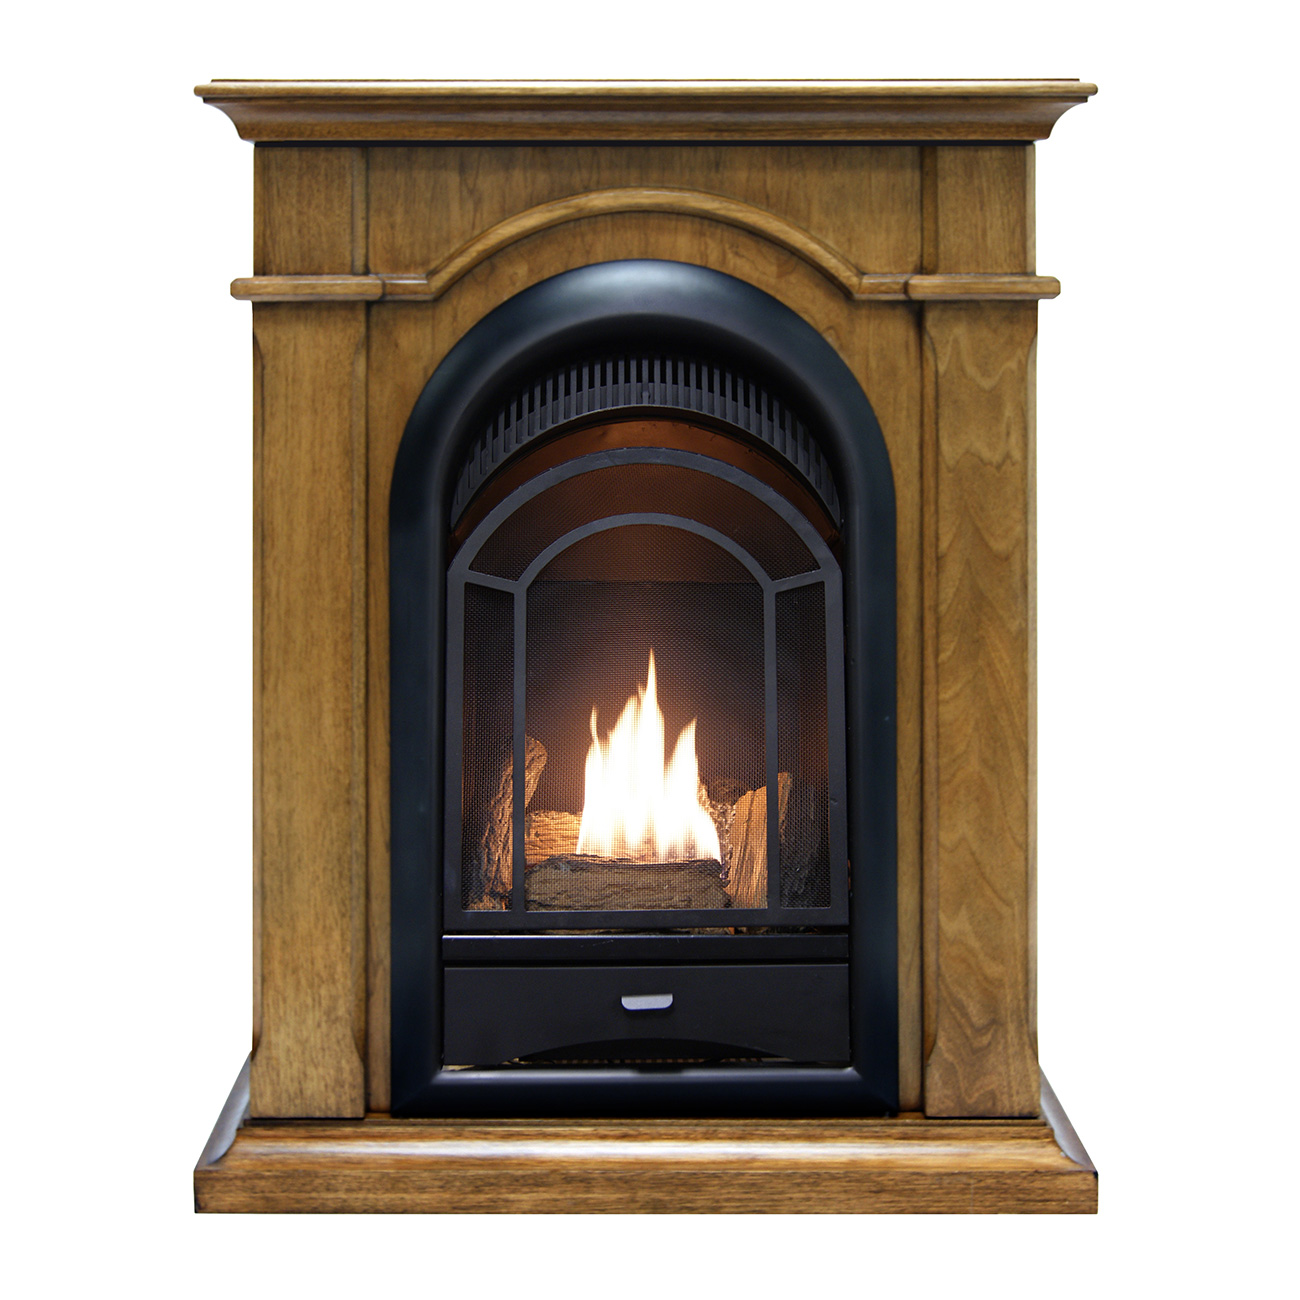 Ventless Fireplace: ProCom Dual Fuel Ventless Fireplace, 15,000 BTU's